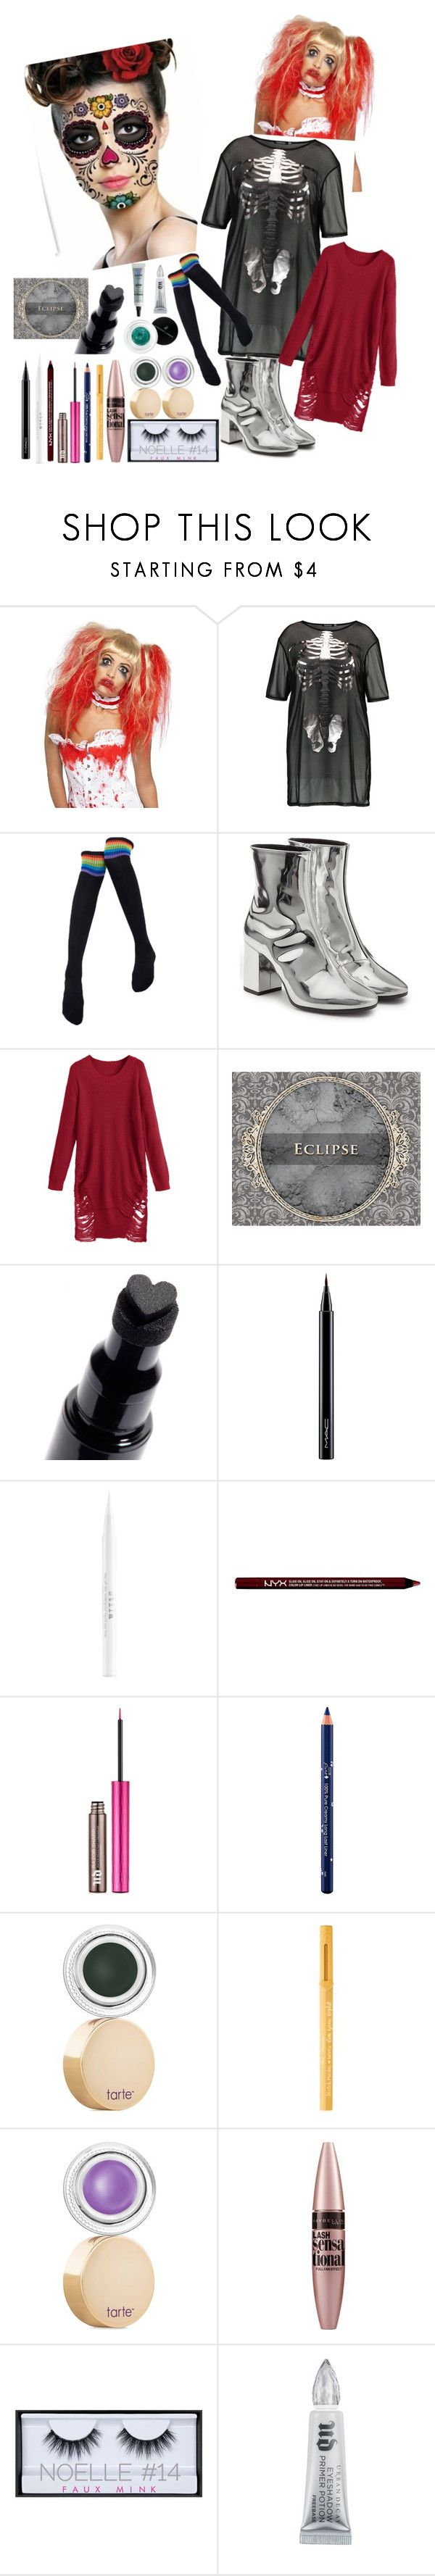 """#promqueen"" by mackeahla-veronica ❤ liked on Polyvore featuring beauty, Balenciaga, MAC Cosmetics, Stila, Charlotte Russe, Urban Decay, Vincent Longo, 100% Pure, tarte and Too Faced Cosmetics"